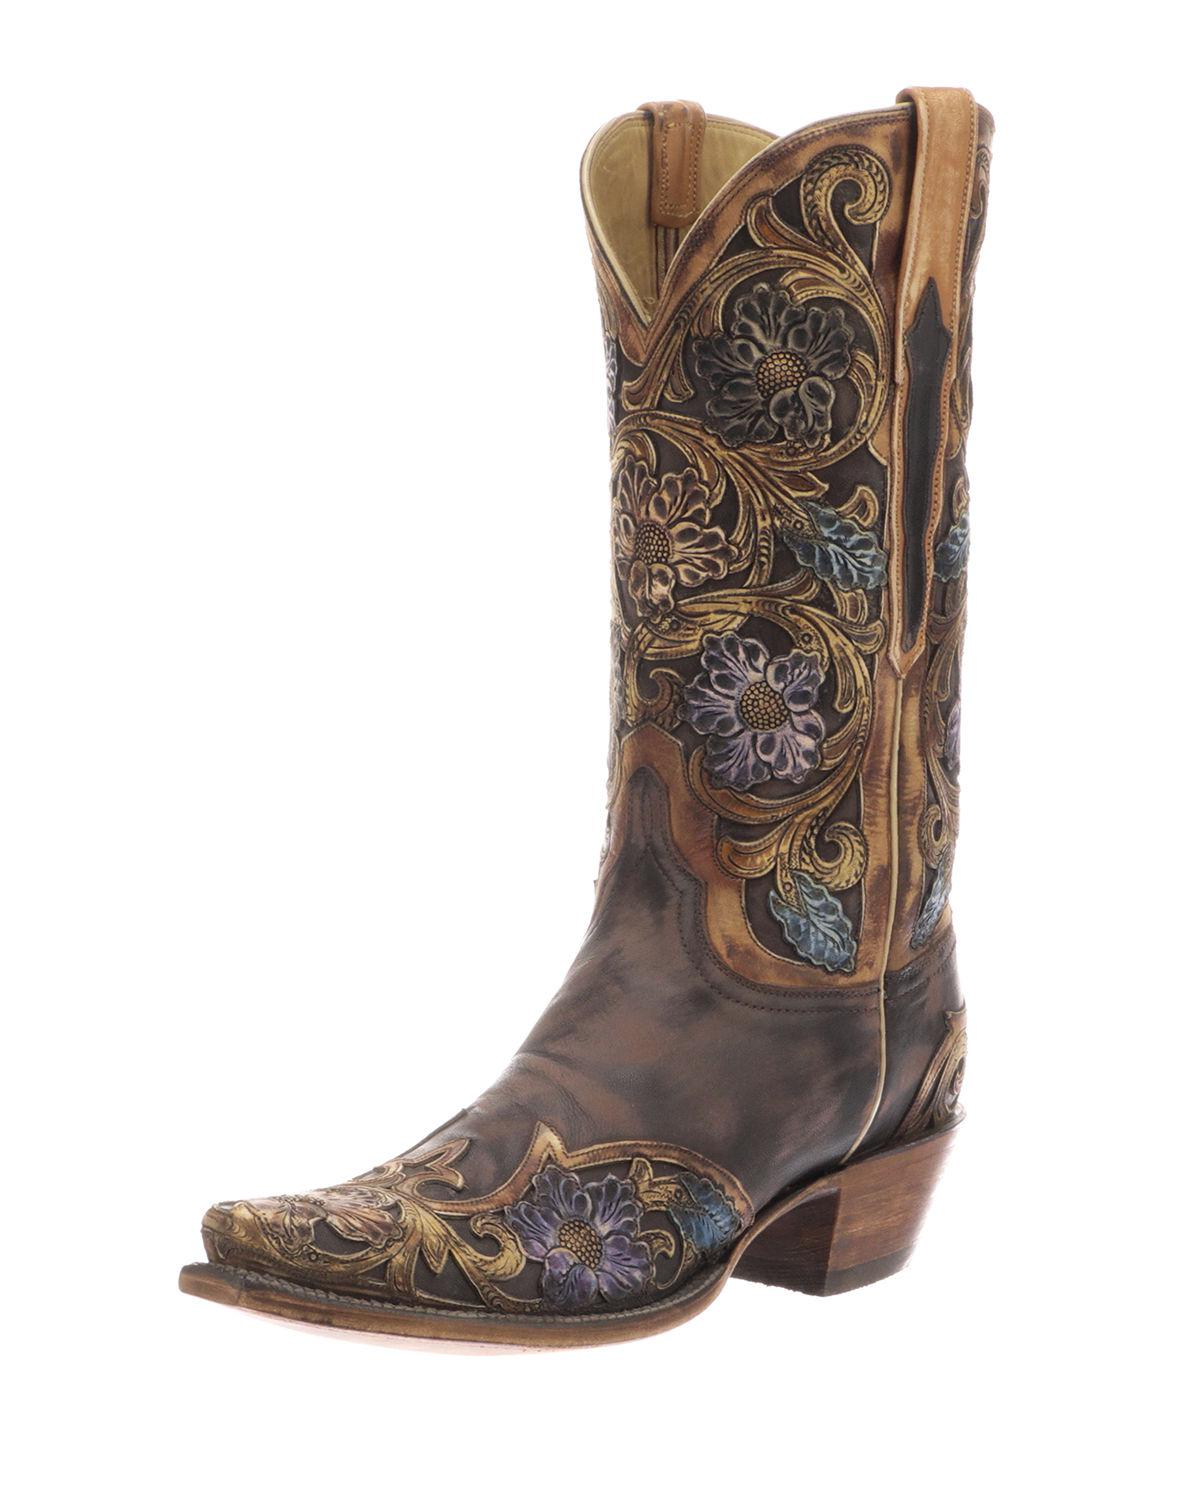 e8a7a7b8e5a Lyst - Lucchese Drea Distressed Floral Boots in Brown